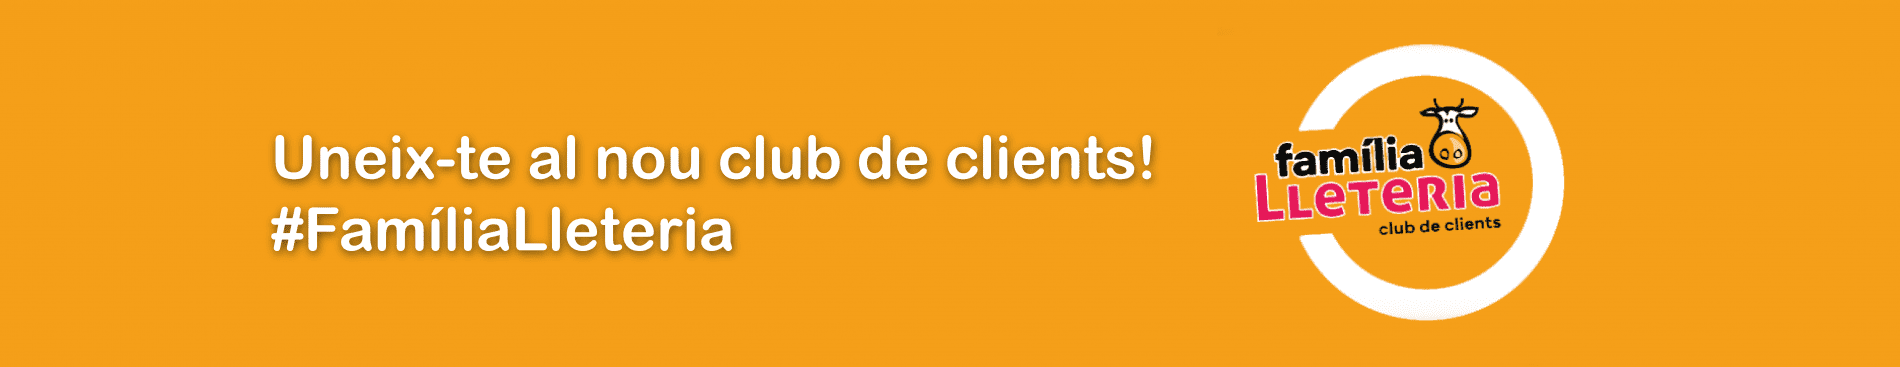 banner_clubclients